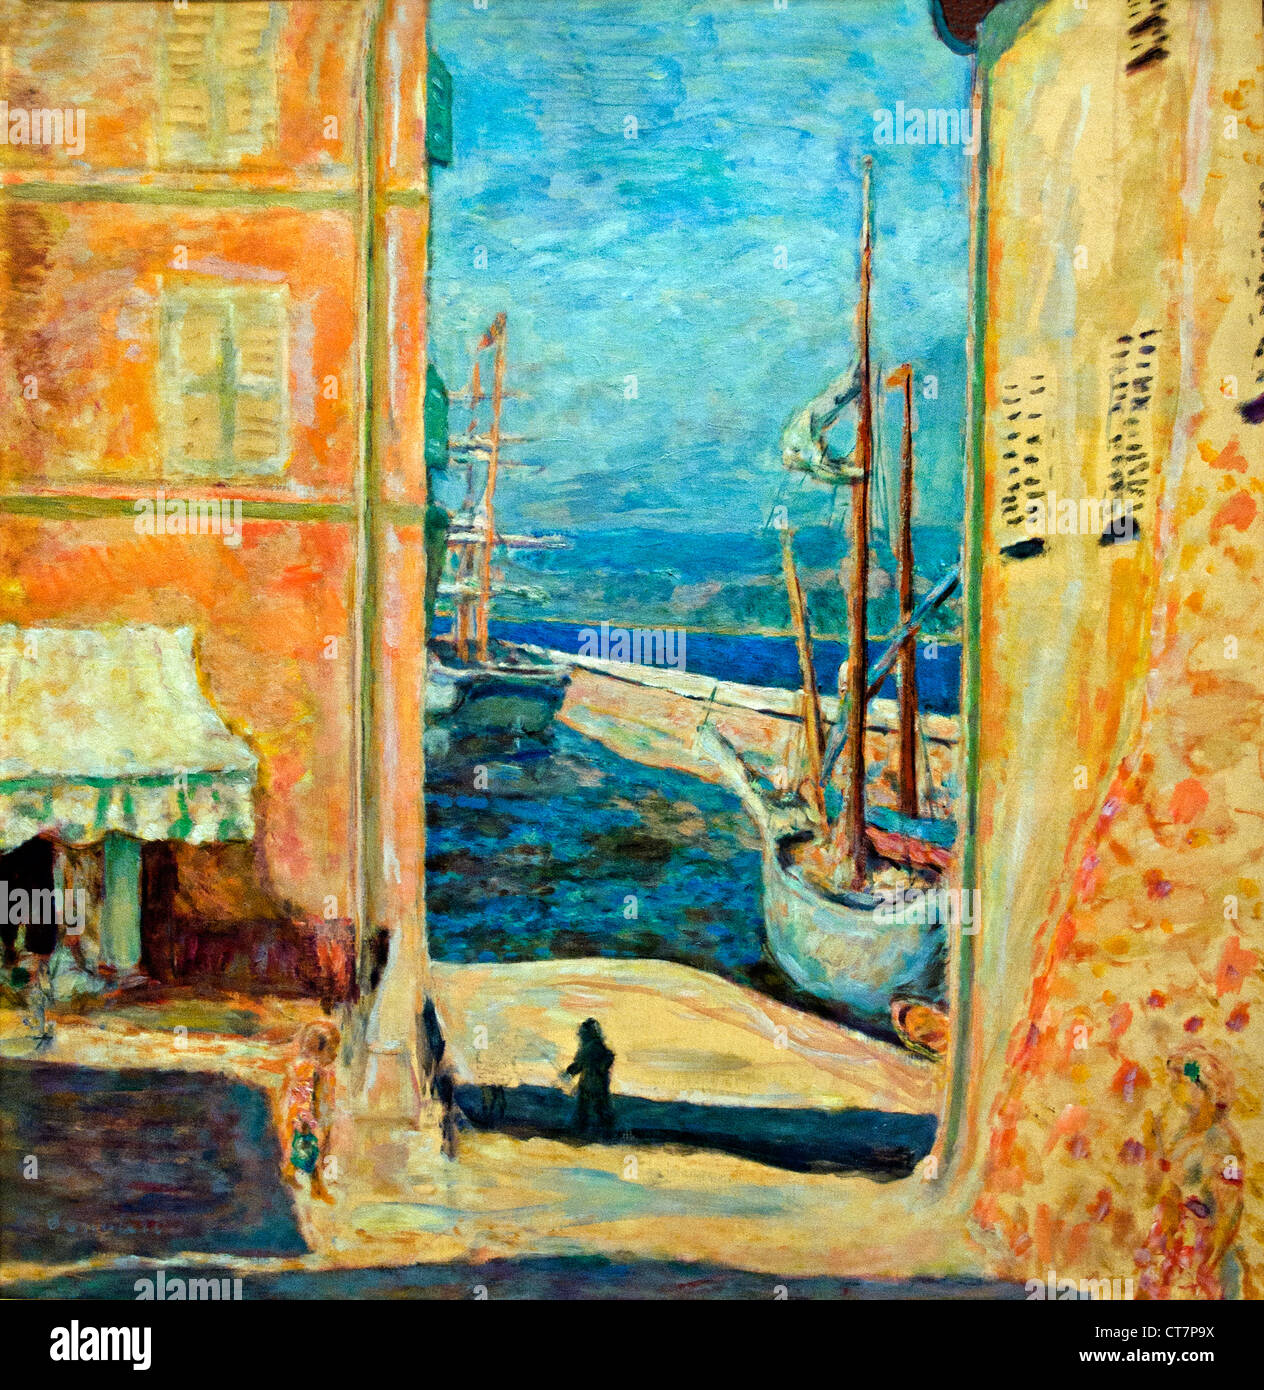 View of The Old Port, Saint-Tropez 1911 Pierre Bonnard 1867 - 1947 France French - Stock Image